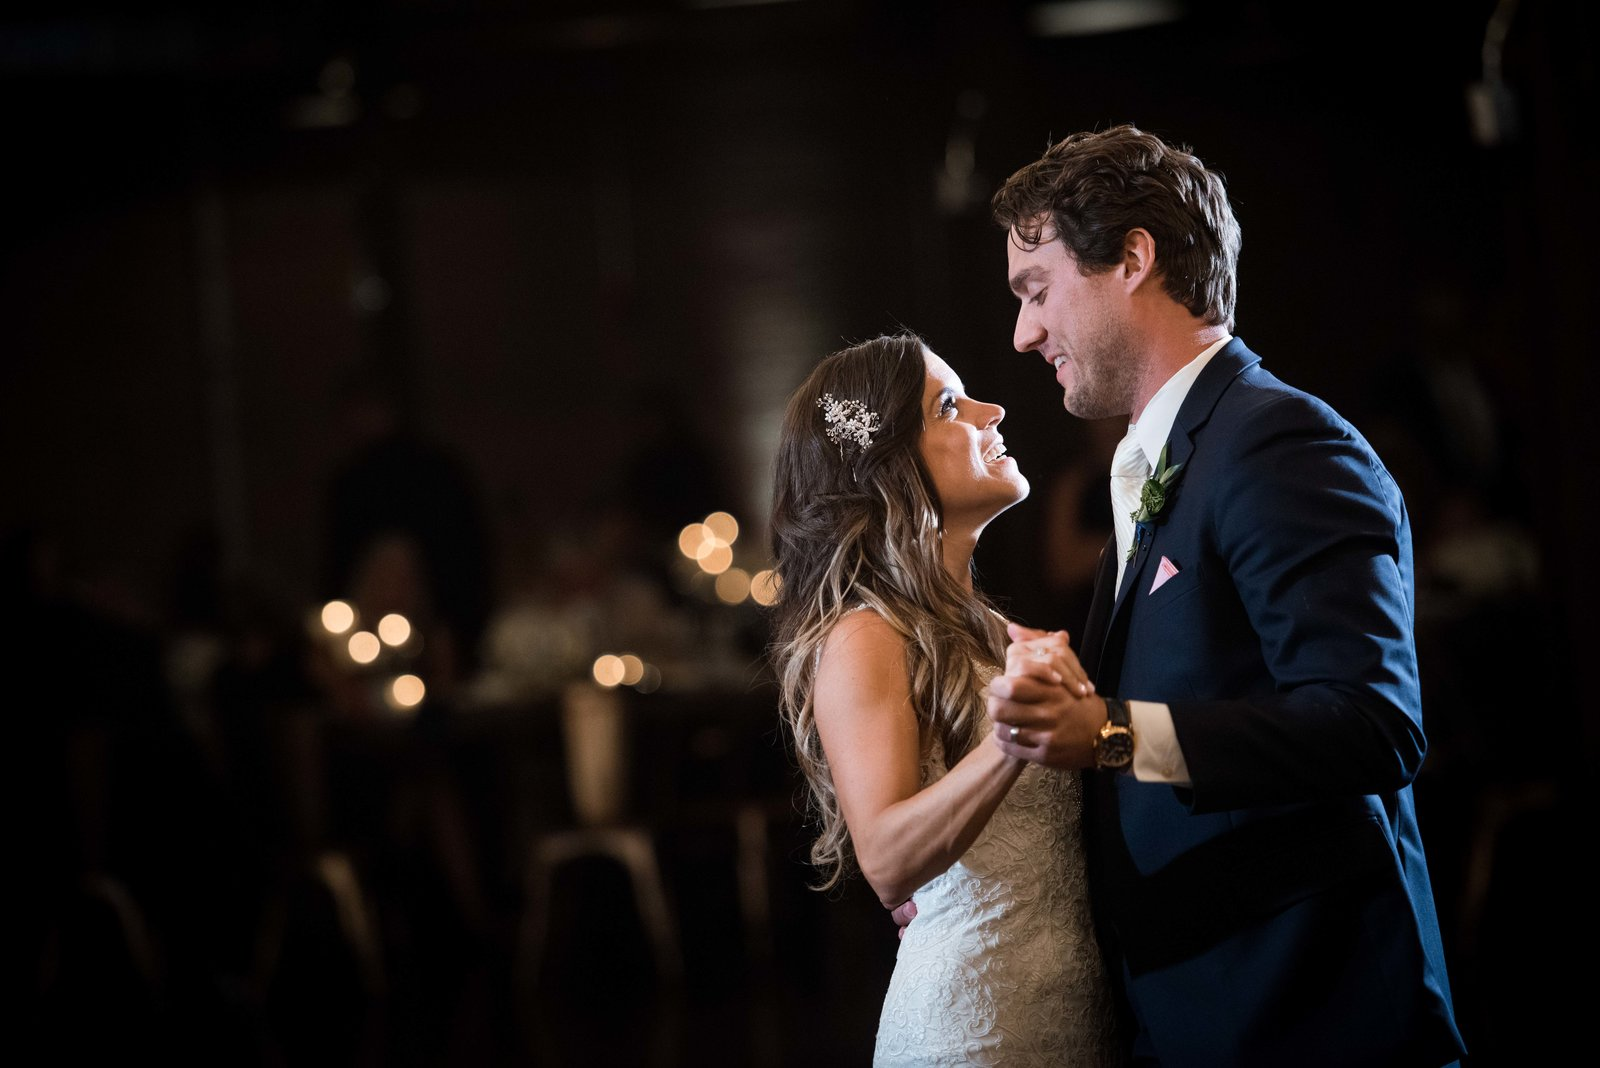 Couple's first dance,